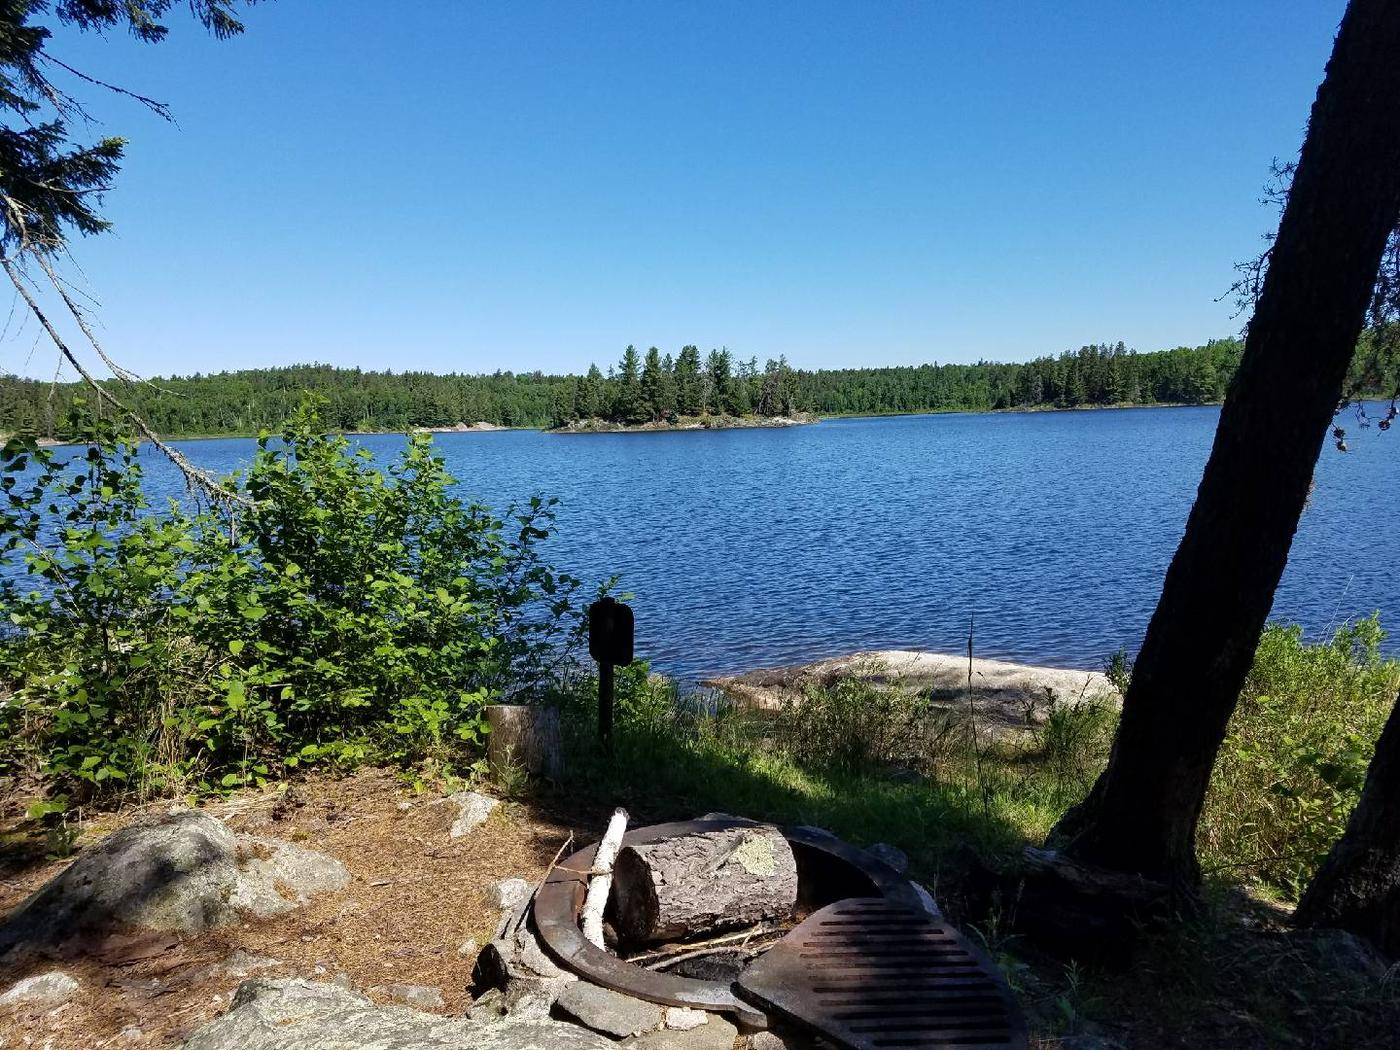 B13 - Peary Lake backcountry campsite